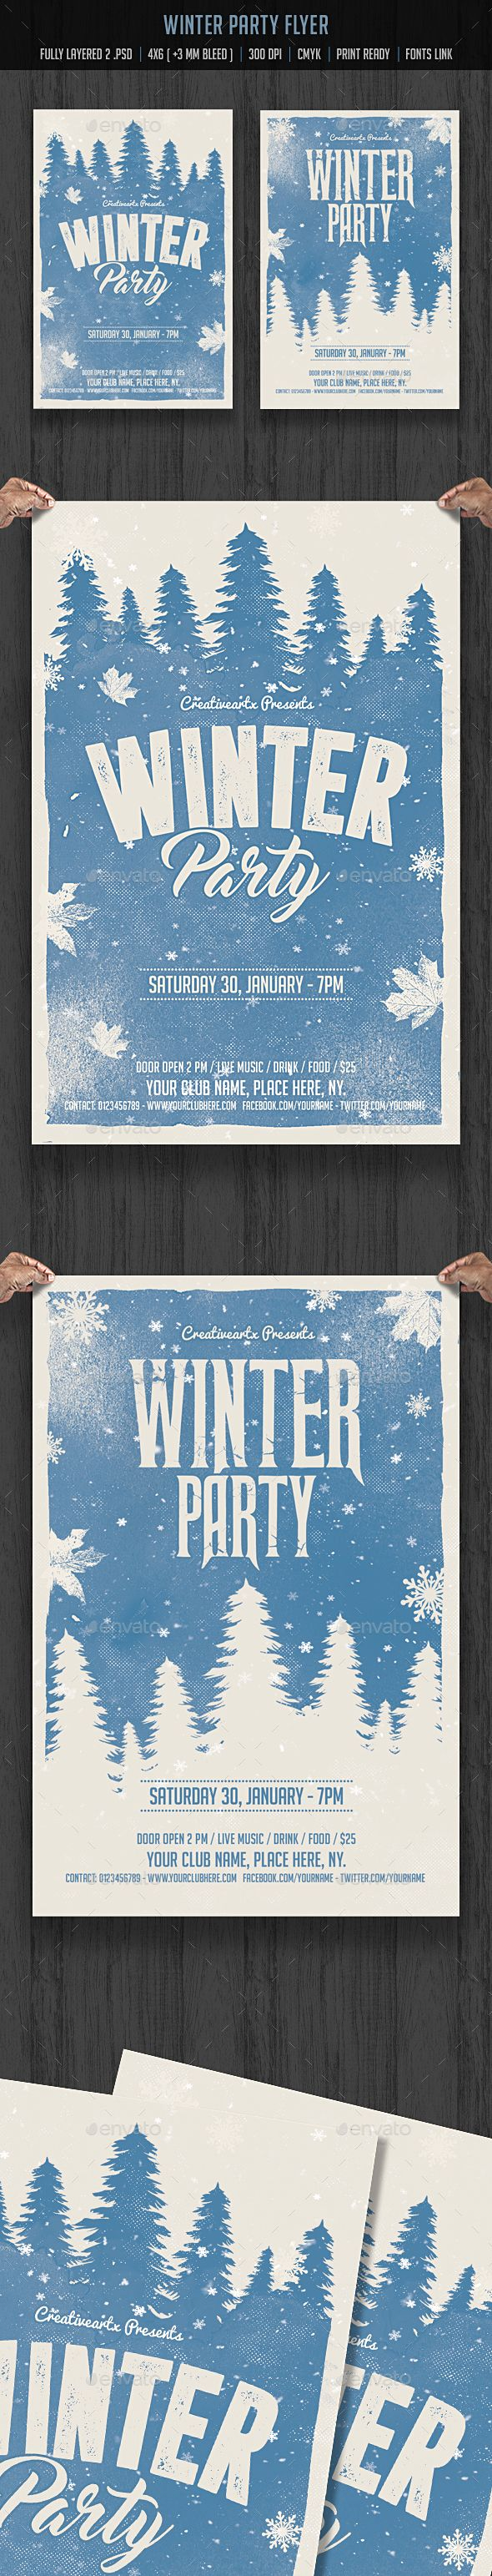 Winter Party Flyer Template Psd  Christmas    Winter